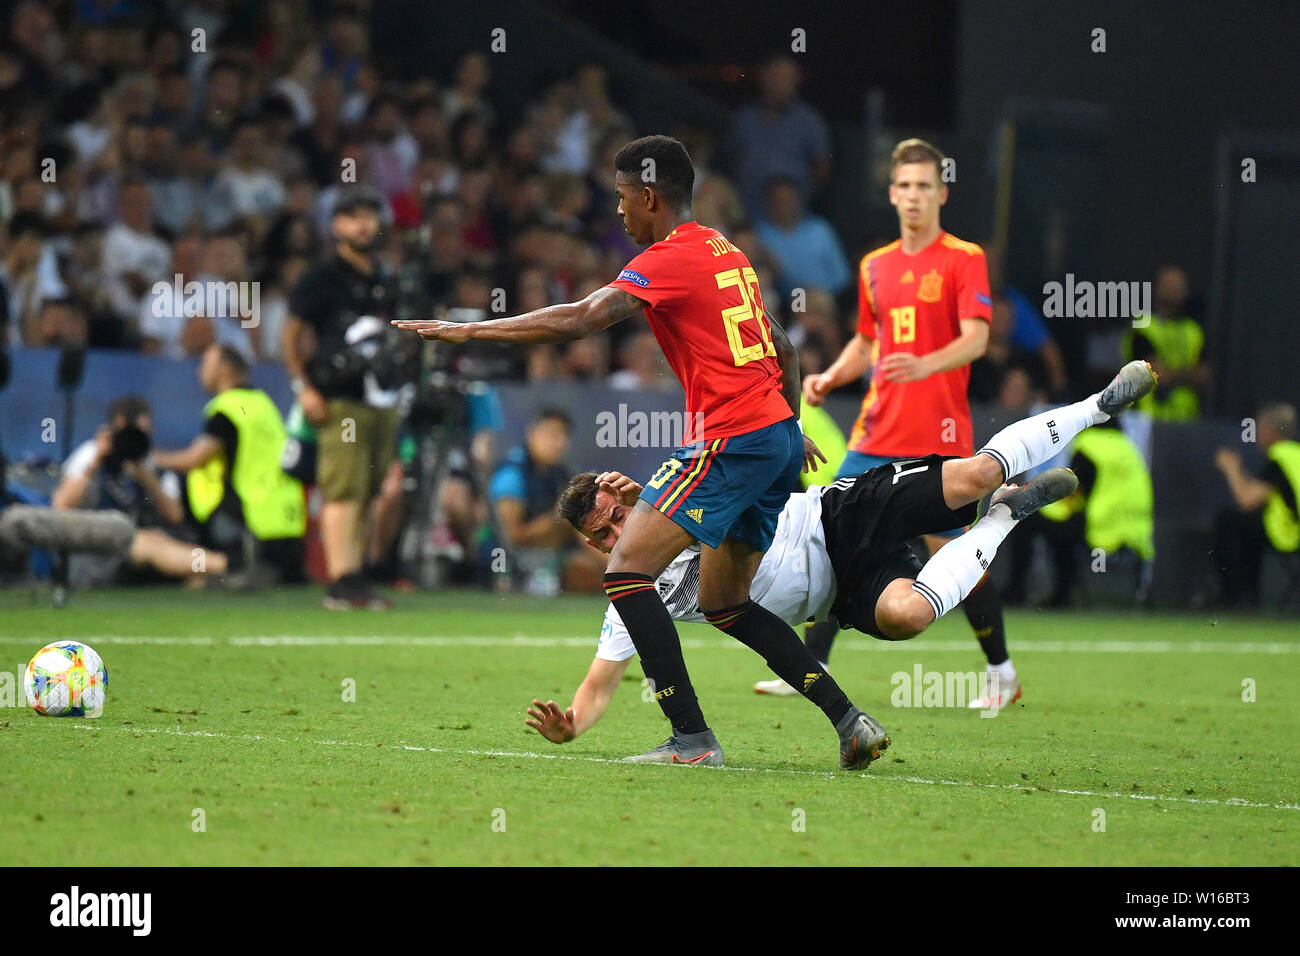 Junior FIRPO (ESP), action, duels versus Marco RICHTER (GER). Spain (ESP) - Germany (GER) 2-1, at 30.06.2019 Stadio Friuli Udine. Football U-21, FINALE UEFA Under21 European Championship in Italy/SanMarino from 16.-30.06.2019. | Usage worldwide - Stock Image